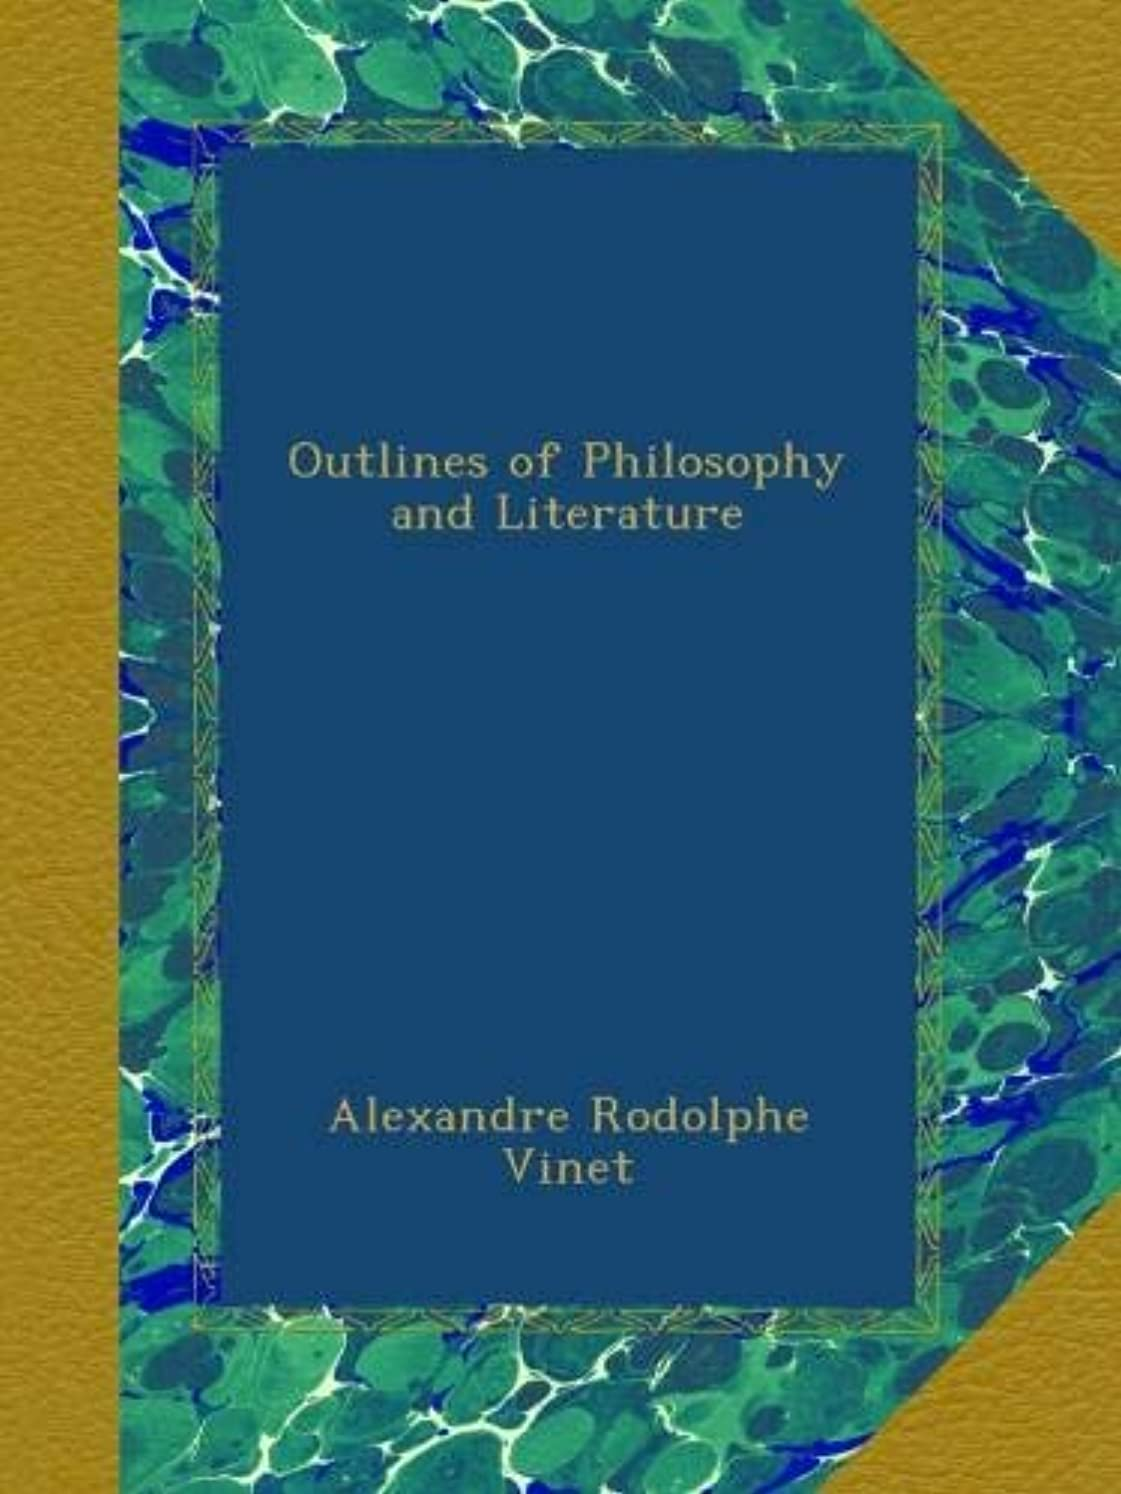 息苦しい寛大さ自動化Outlines of Philosophy and Literature